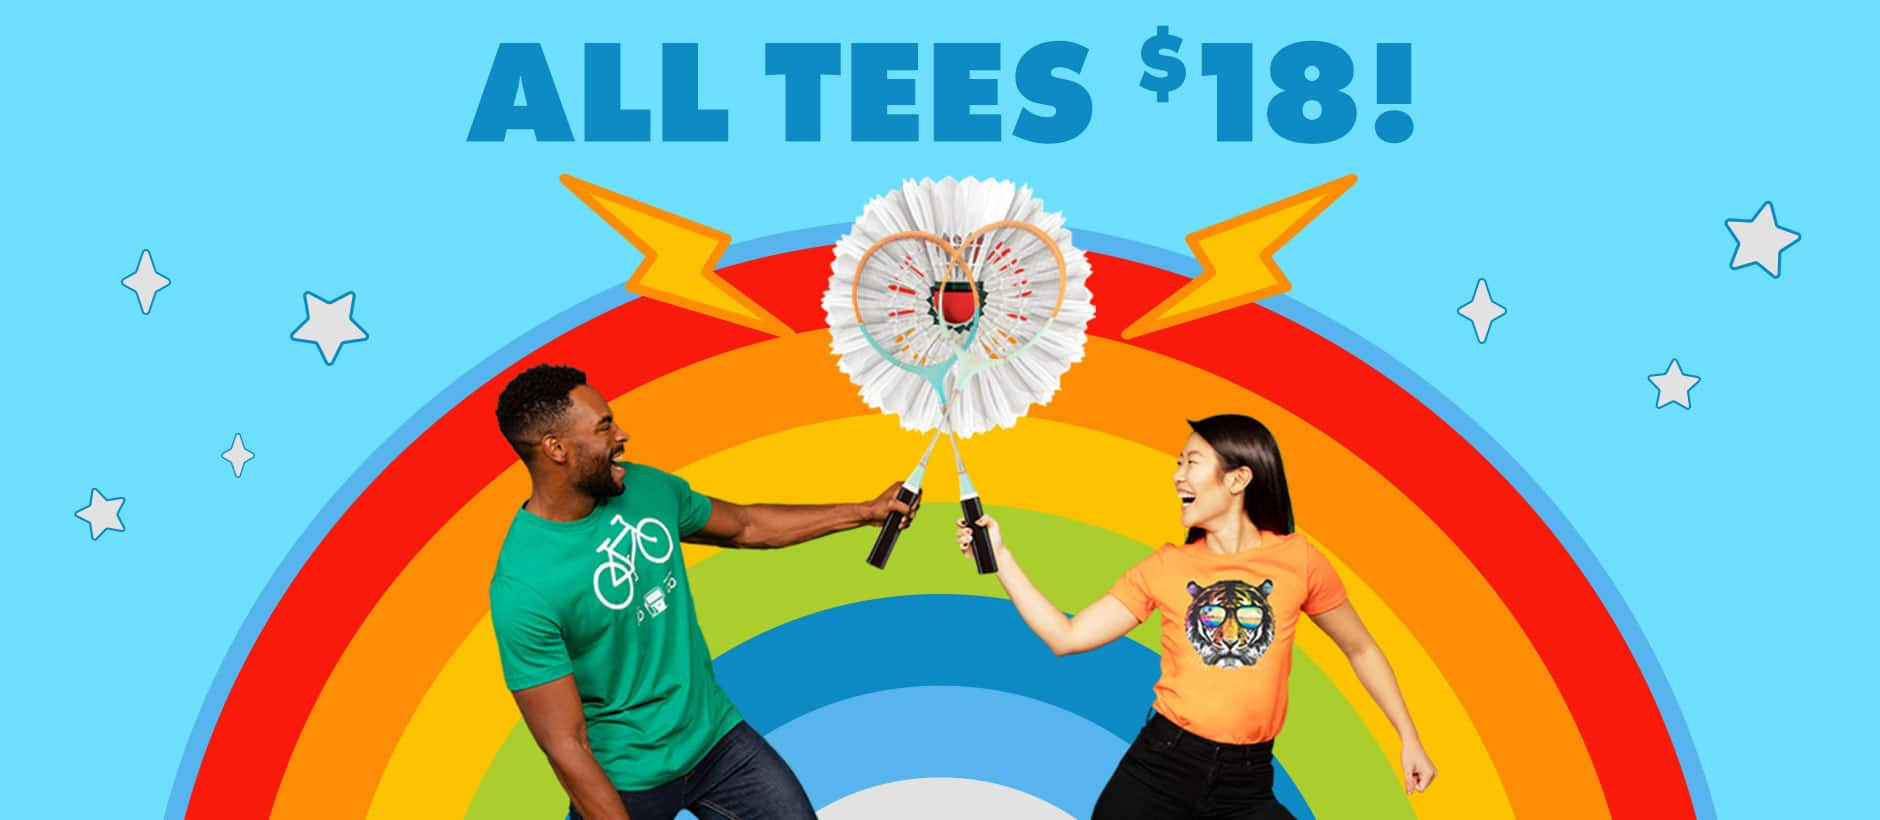 Summer Sale! Shop $18 Tees on Threadless